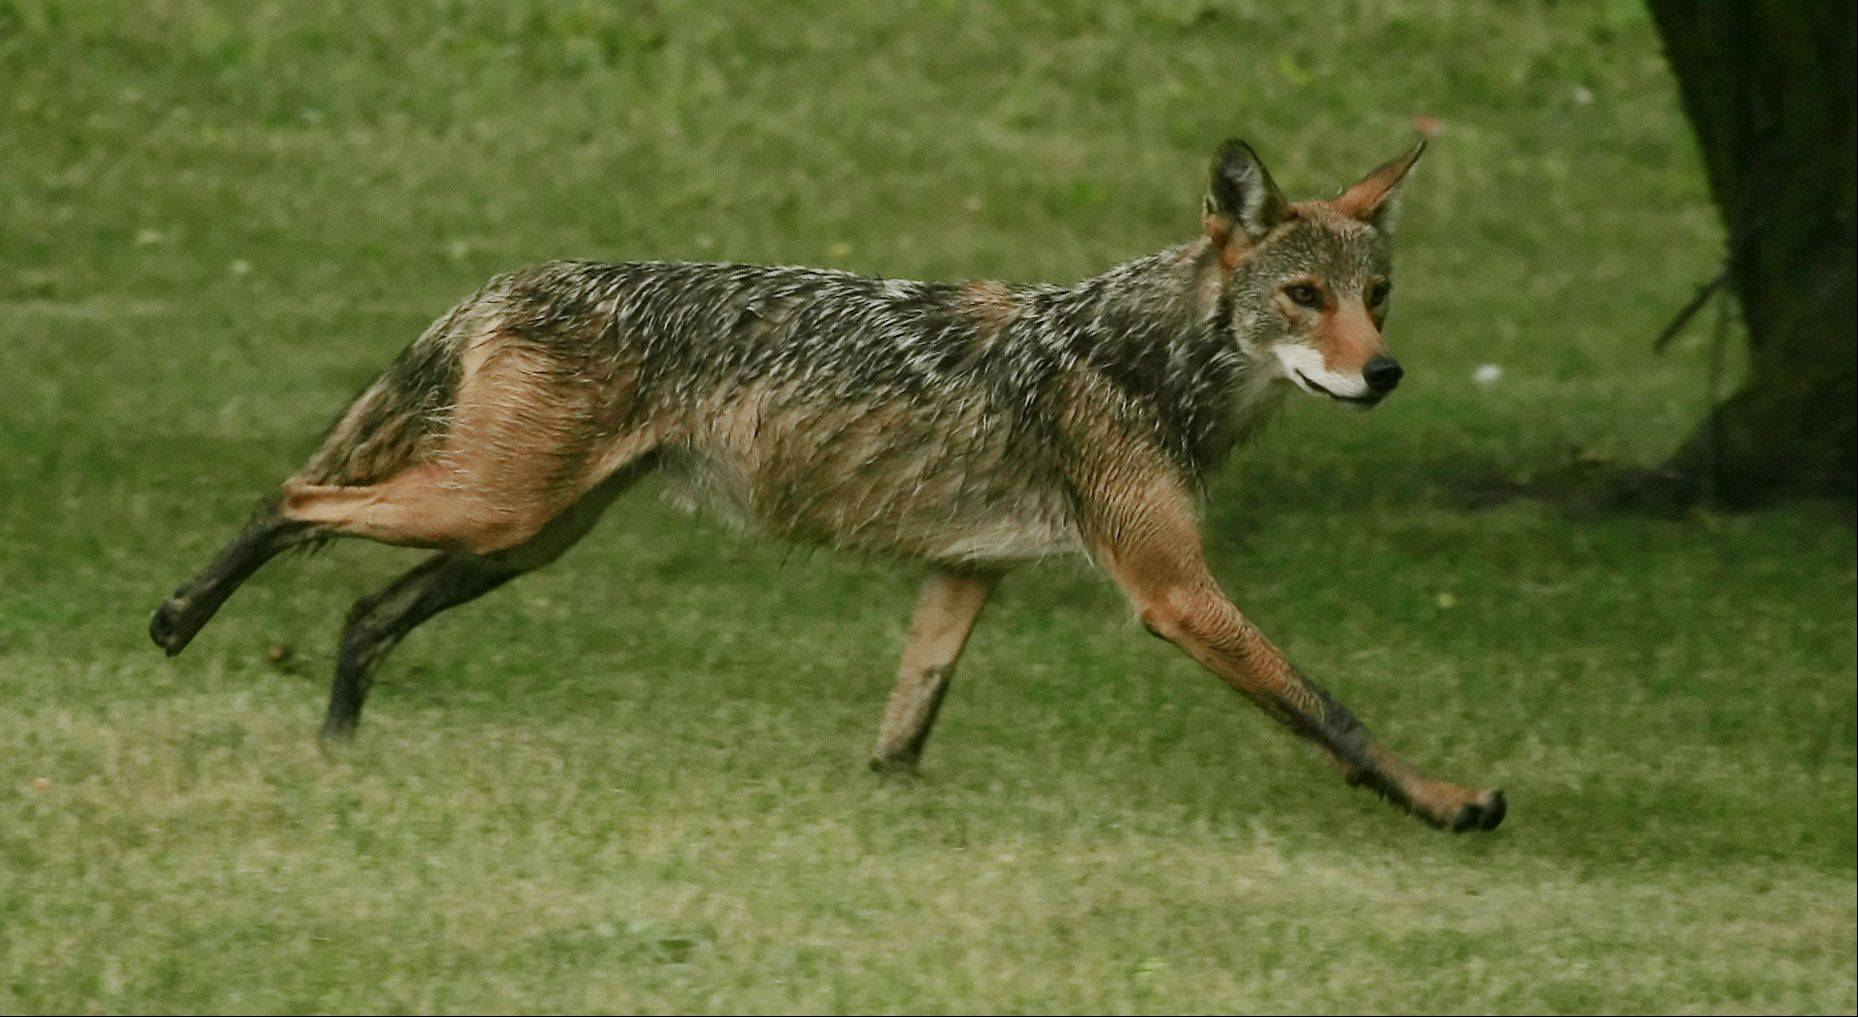 People can coexist with wildlife peacefully. The Lake County Health Department/Community Health Center recommends ways for residents to avoid problems with coyotes, foxes as well as other wildlife.